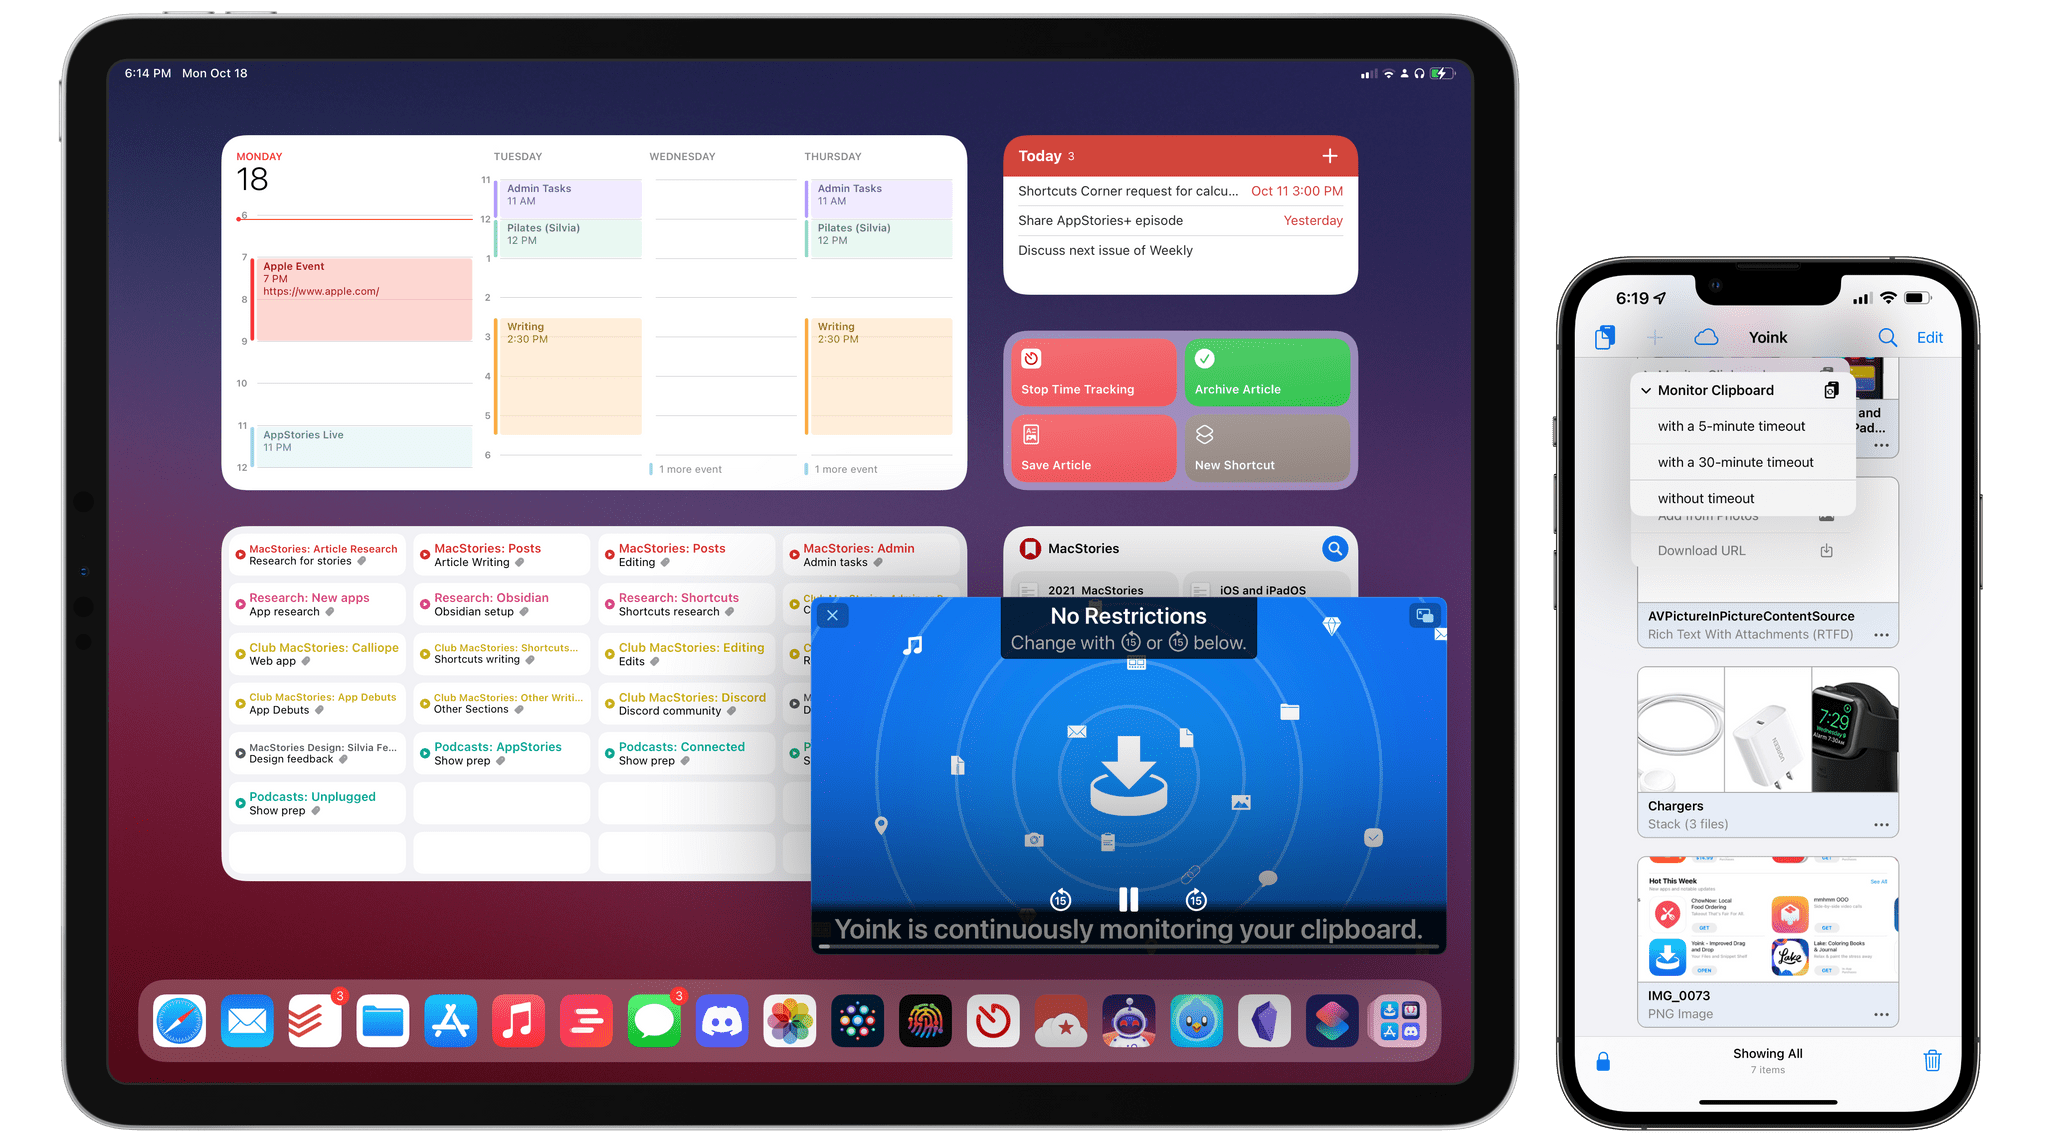 Yoink's new persistent clipboard monitoring.